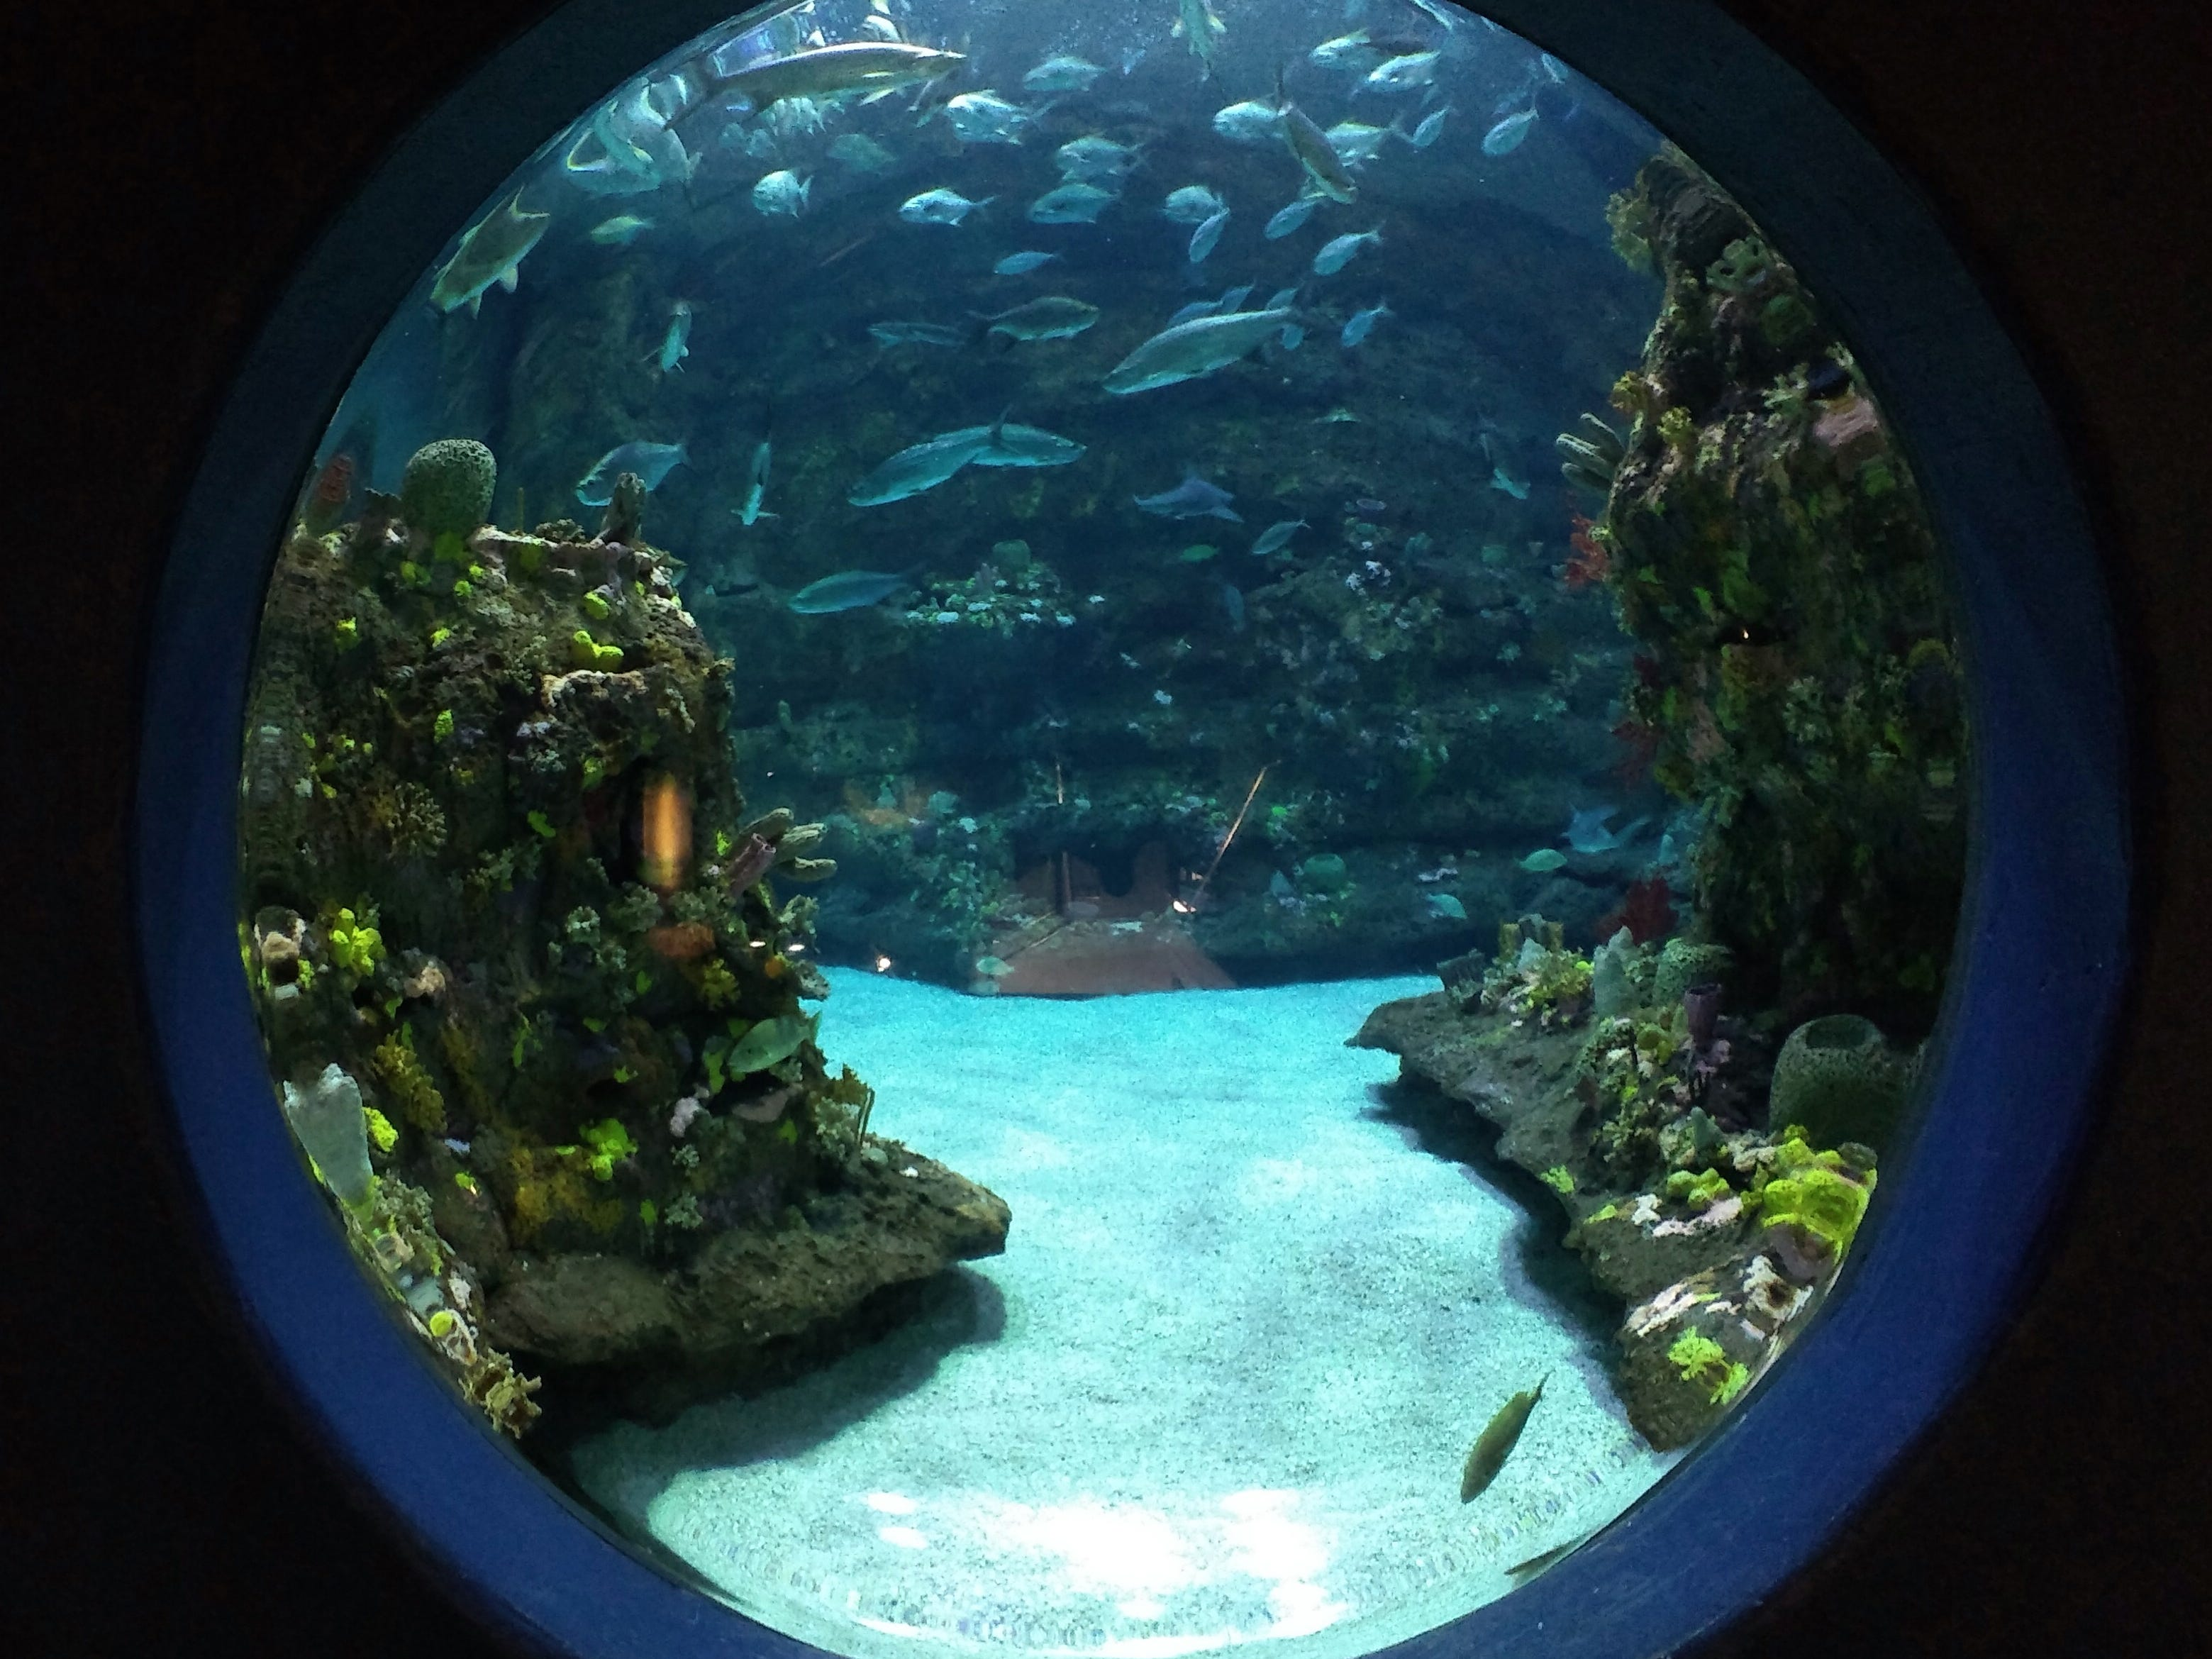 The aquarium is a major area attraction. Exhibits showcase the diversity of marine life off the coast, where the Labrador and Gulf water currents mesh.